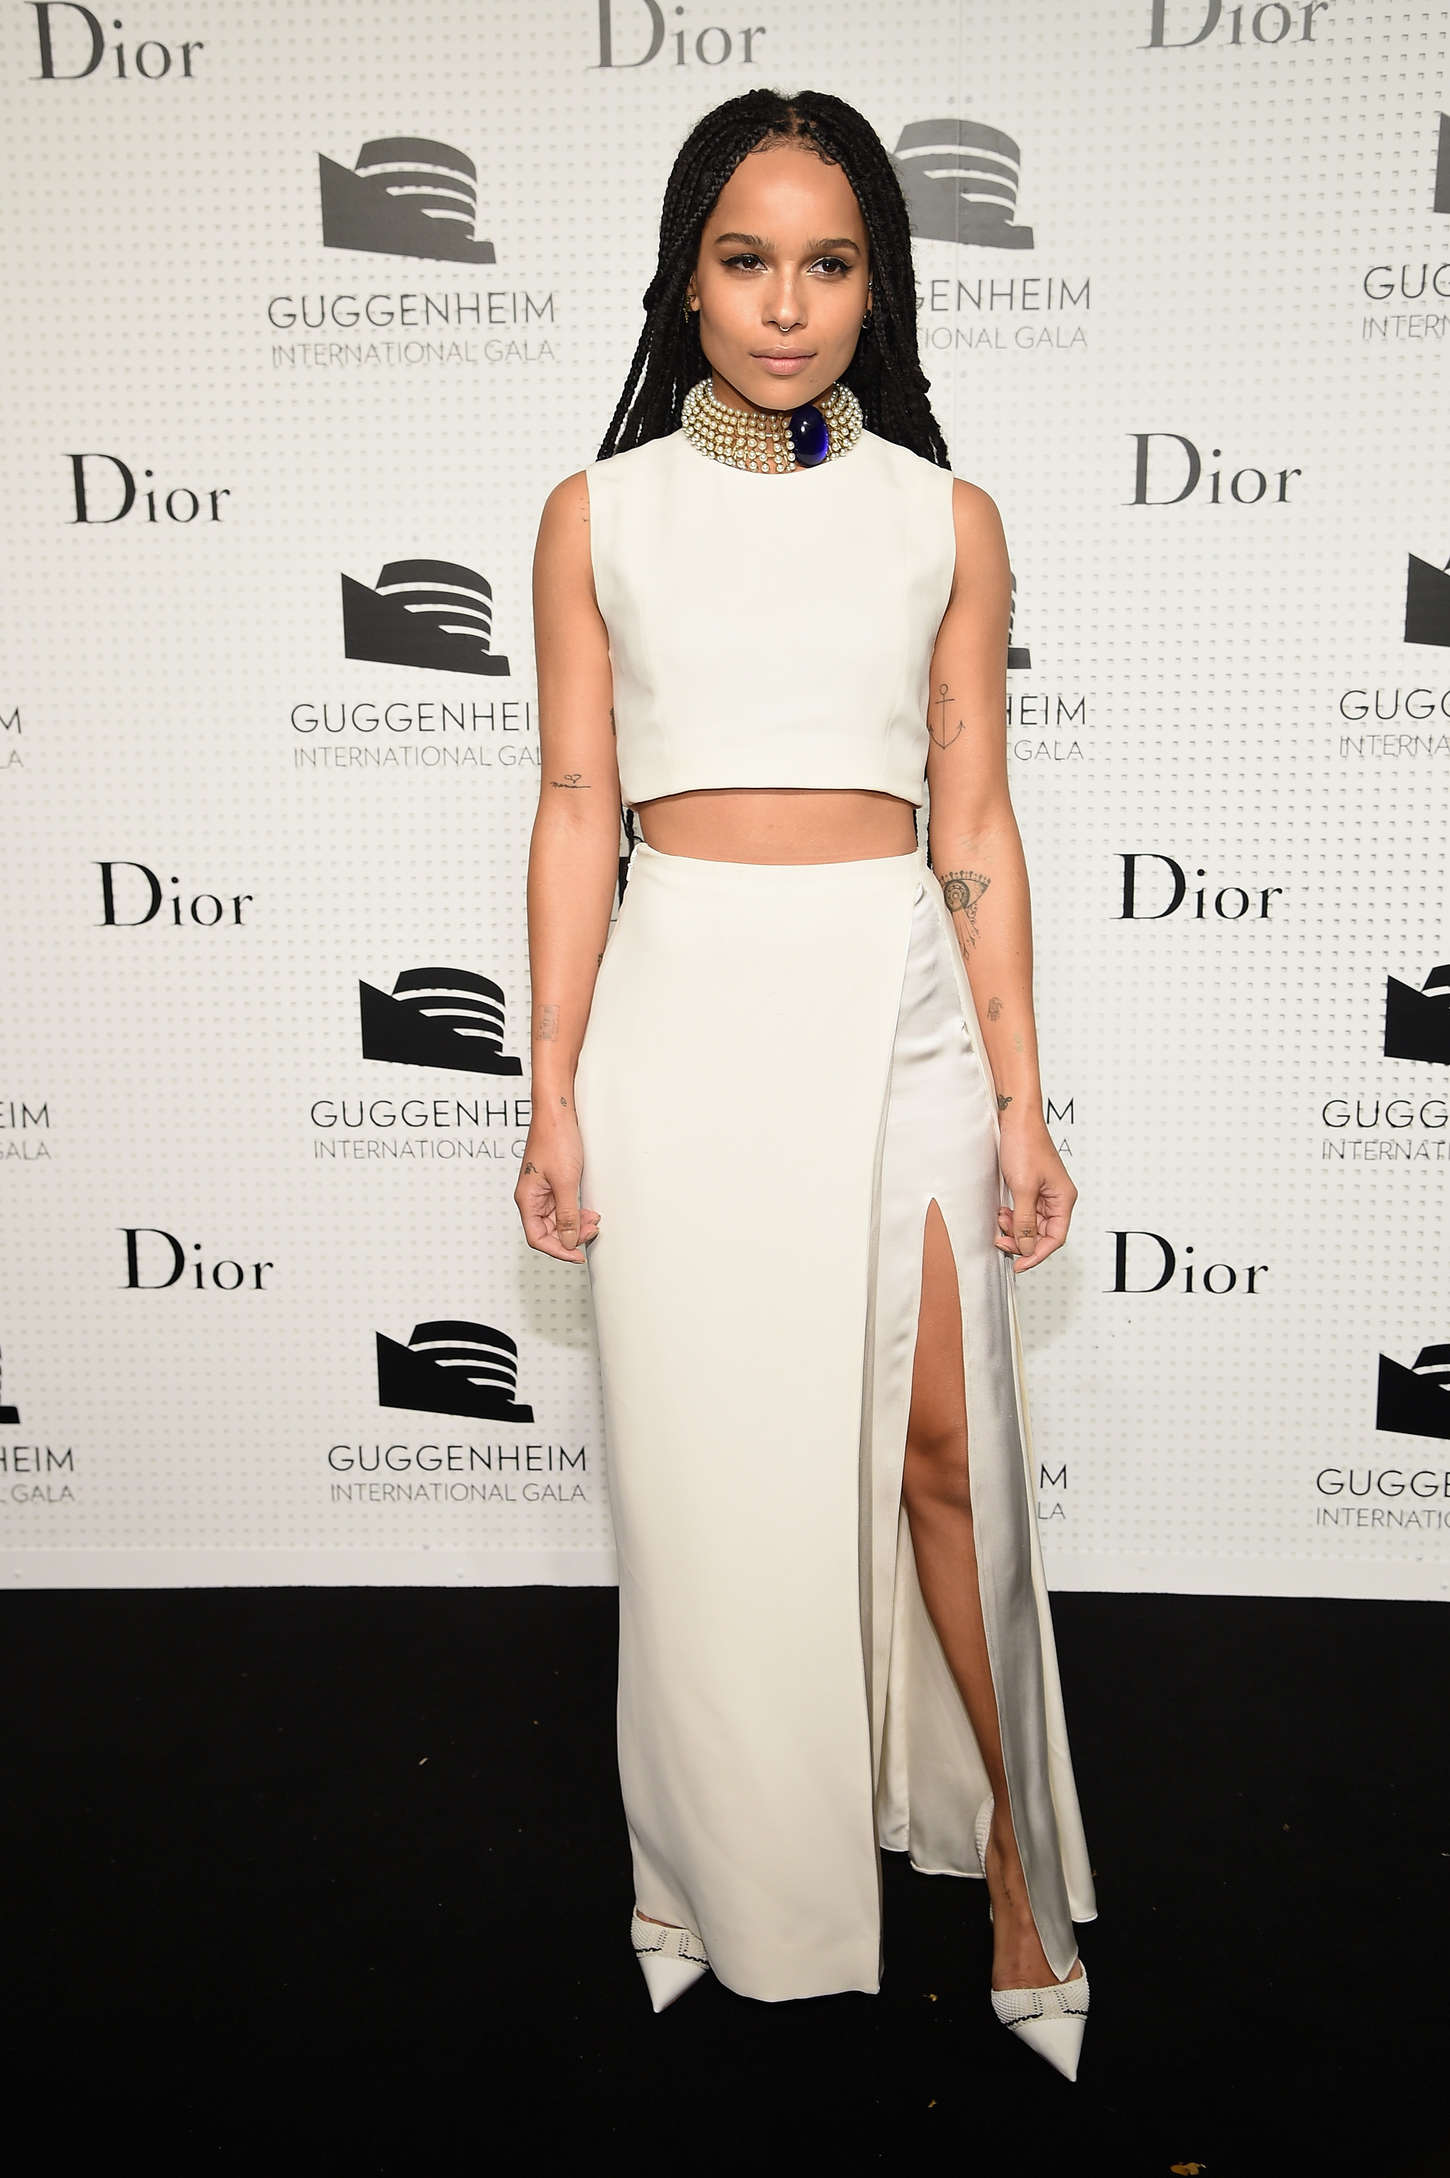 Zoe-Kravitz-Guggenheim-International-Gala-Dinner-09